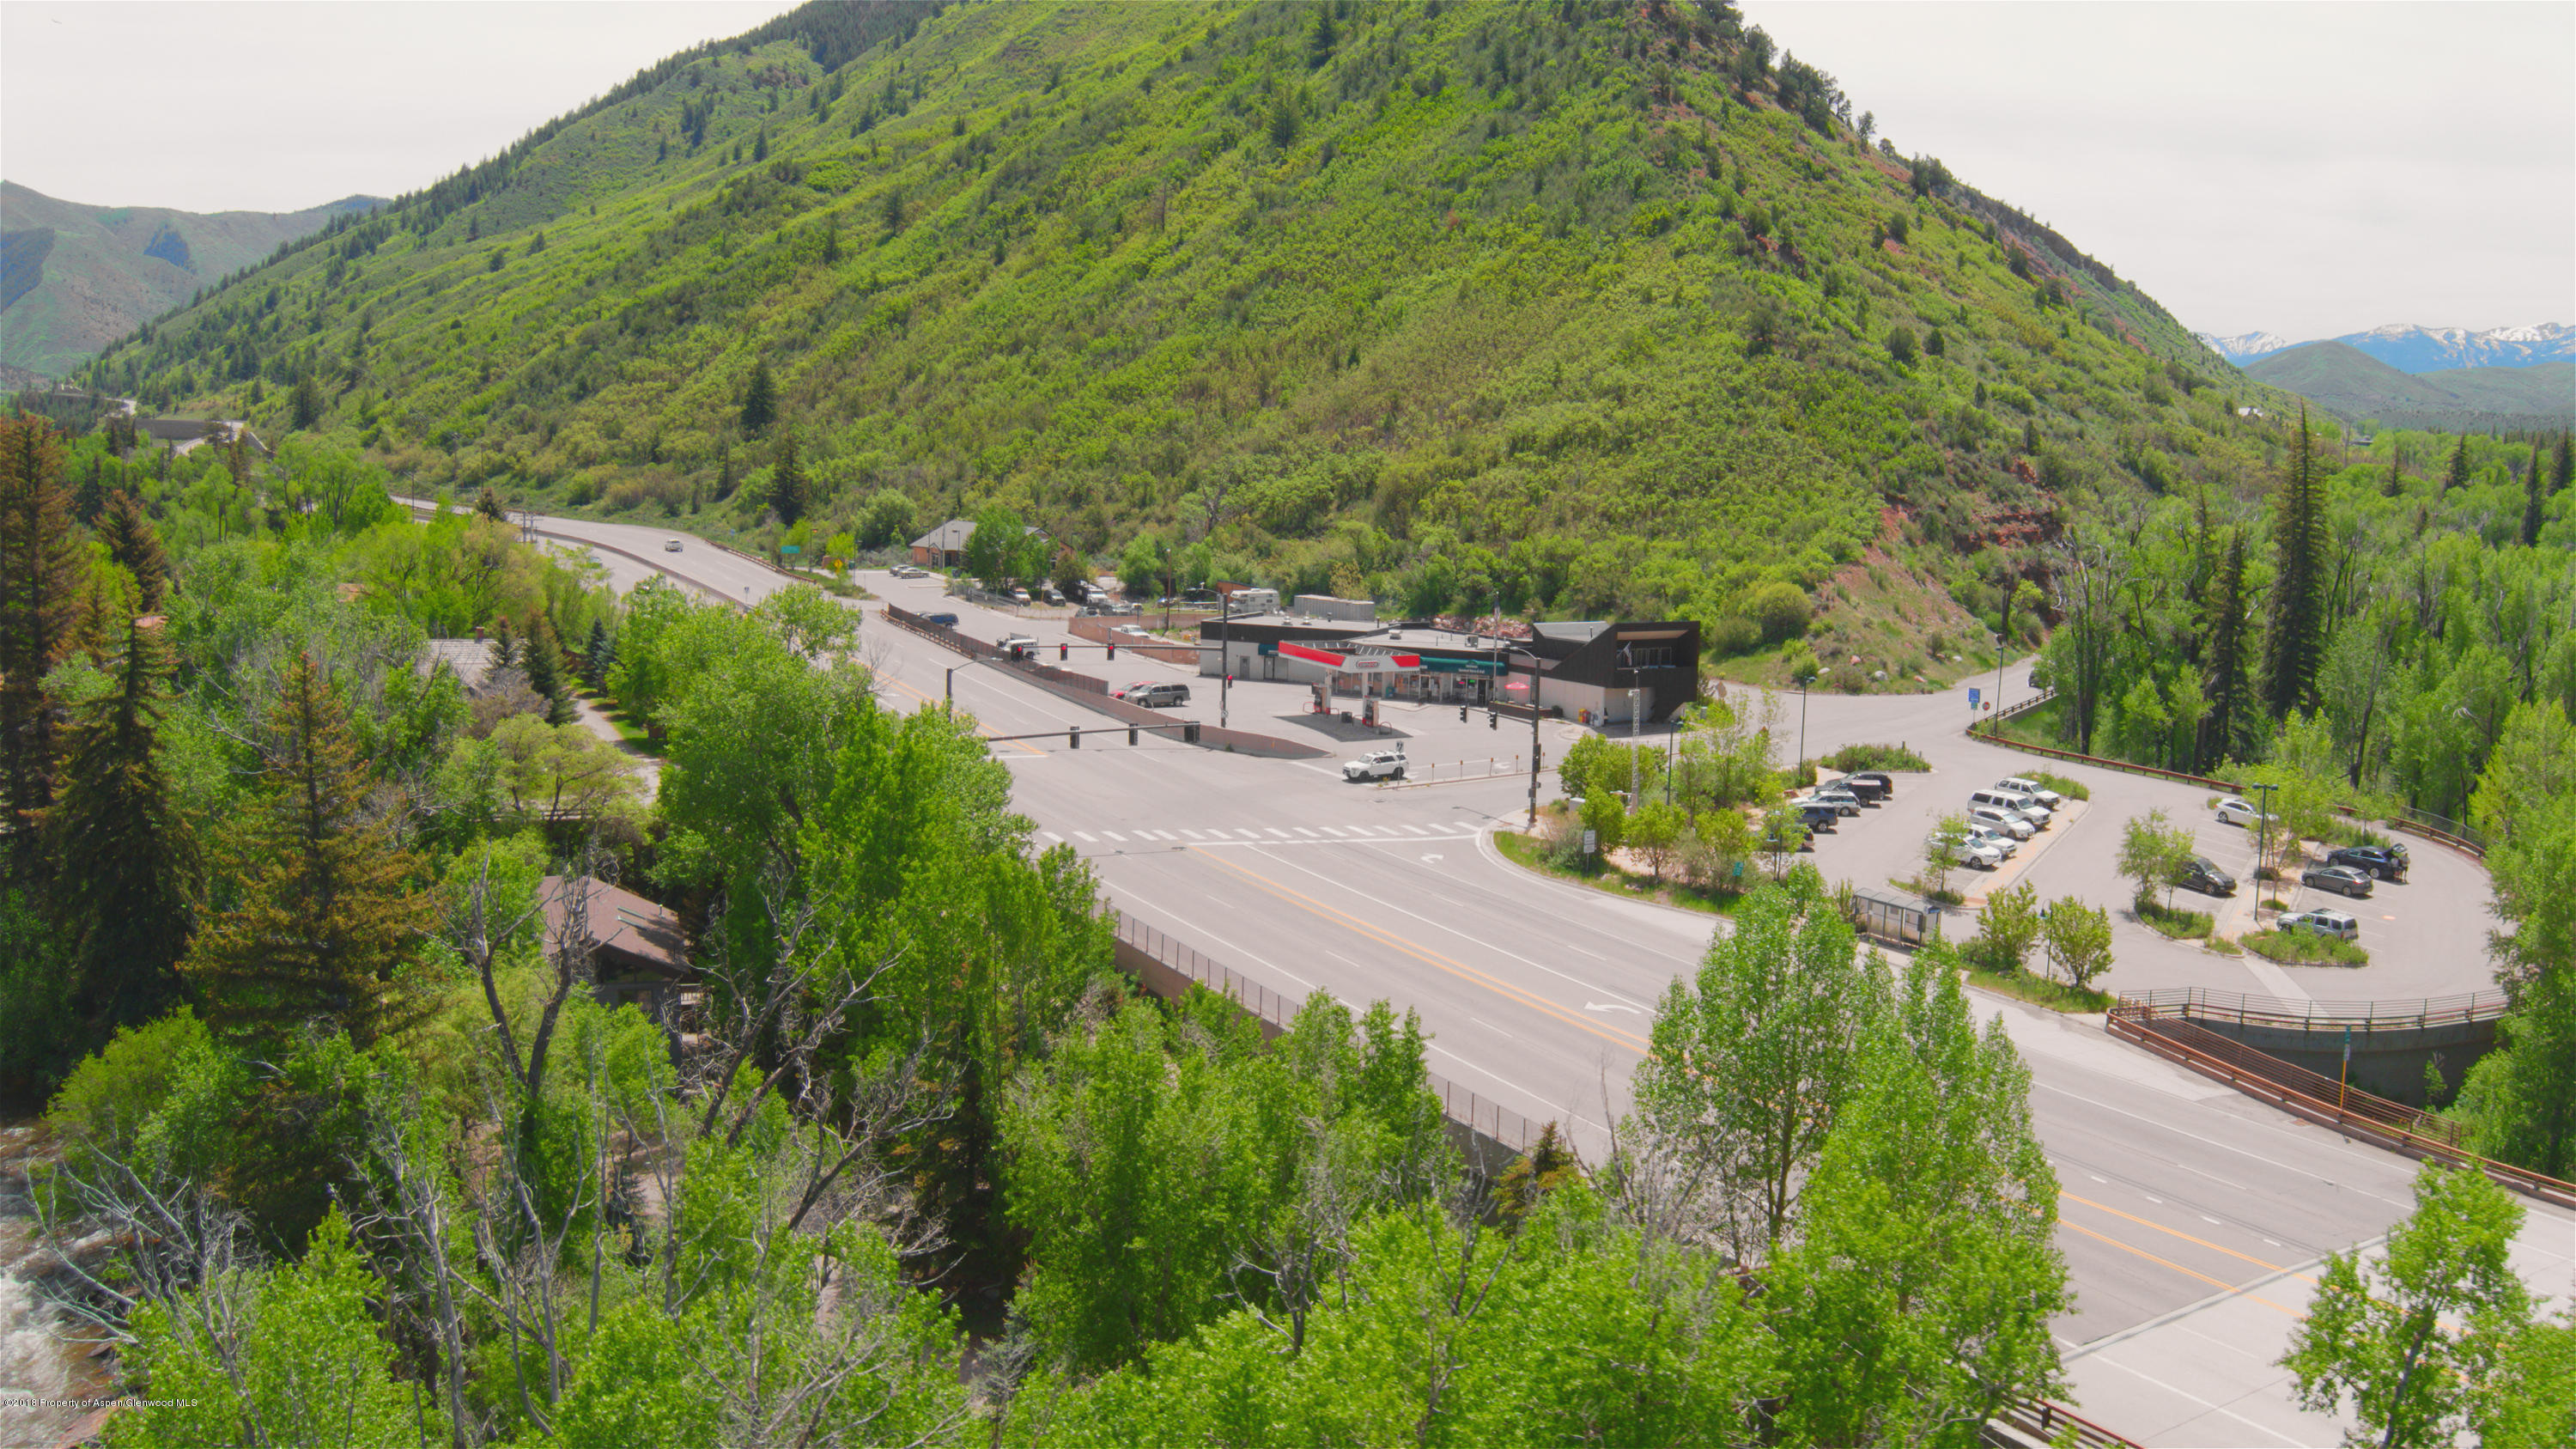 MLS# 155478 - 2 - 26808 Co-82 , Snowmass, CO 81654